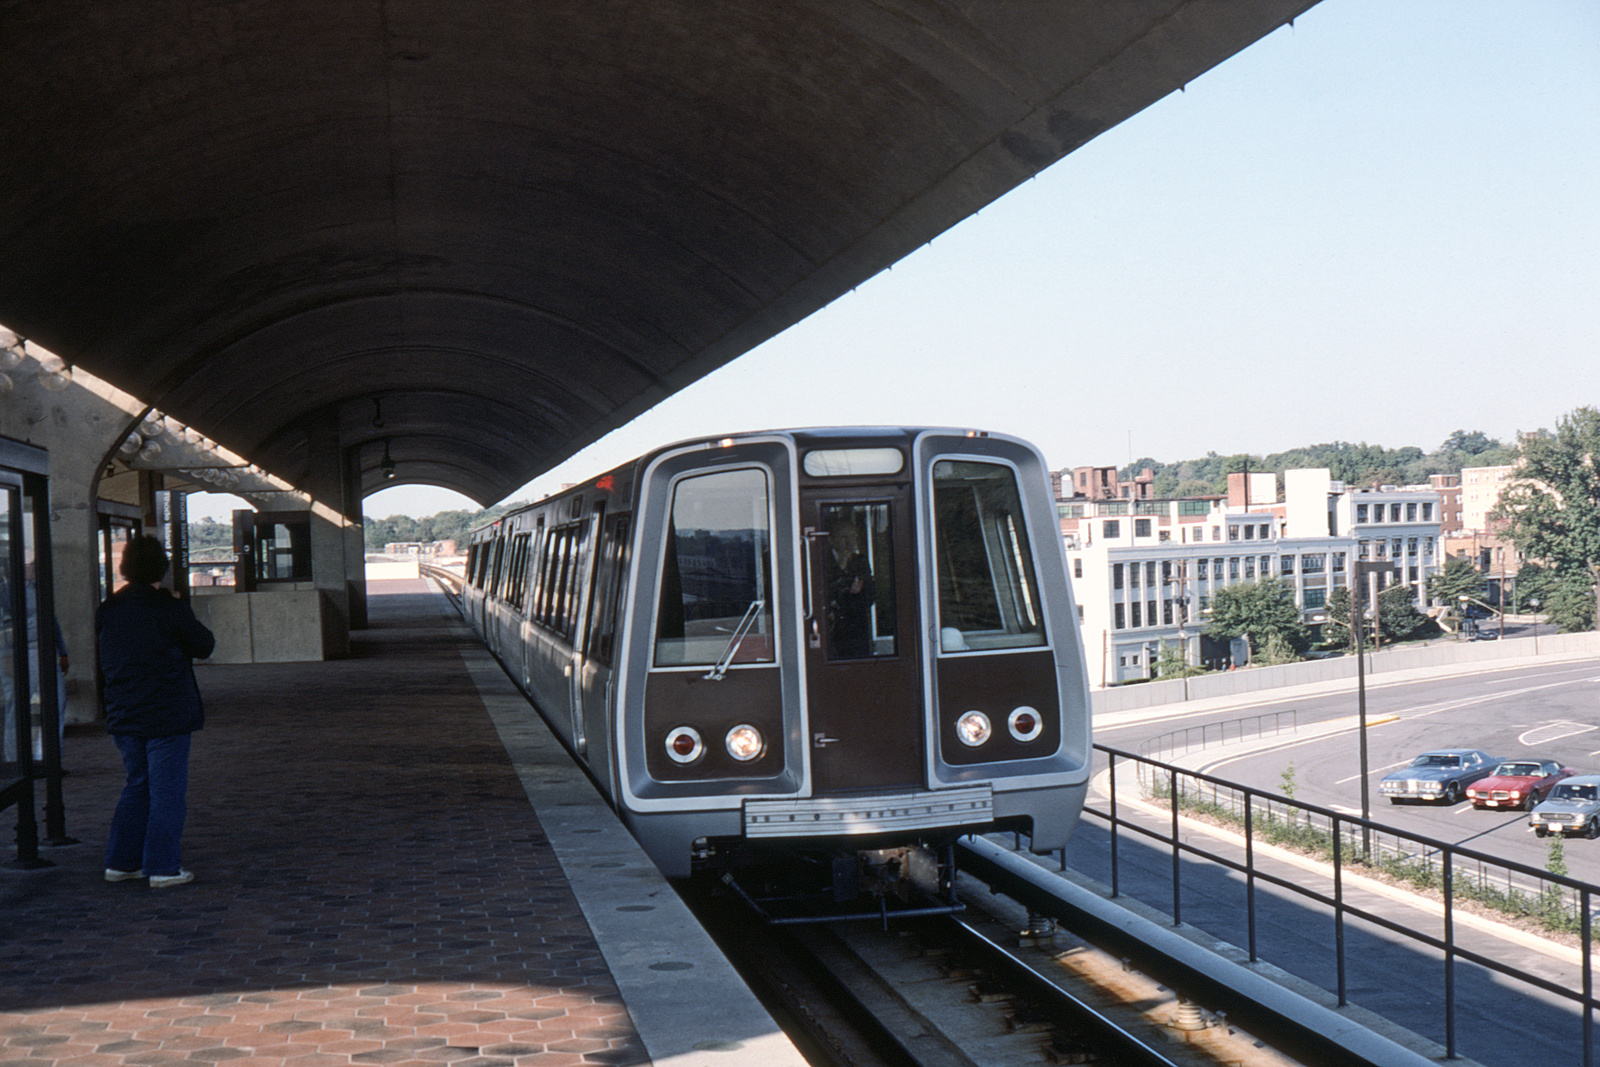 (356k, 1044x707)<br><b>Country:</b> United States<br><b>City:</b> Washington, D.C.<br><b>System:</b> Washington Metro (WMATA)<br><b>Line:</b> WMATA Red Line<br><b>Location:</b> Rhode Island Avenue <br><b>Collection of:</b> David Pirmann<br><b>Date:</b> 4/1976<br><b>Viewed (this week/total):</b> 3 / 6120